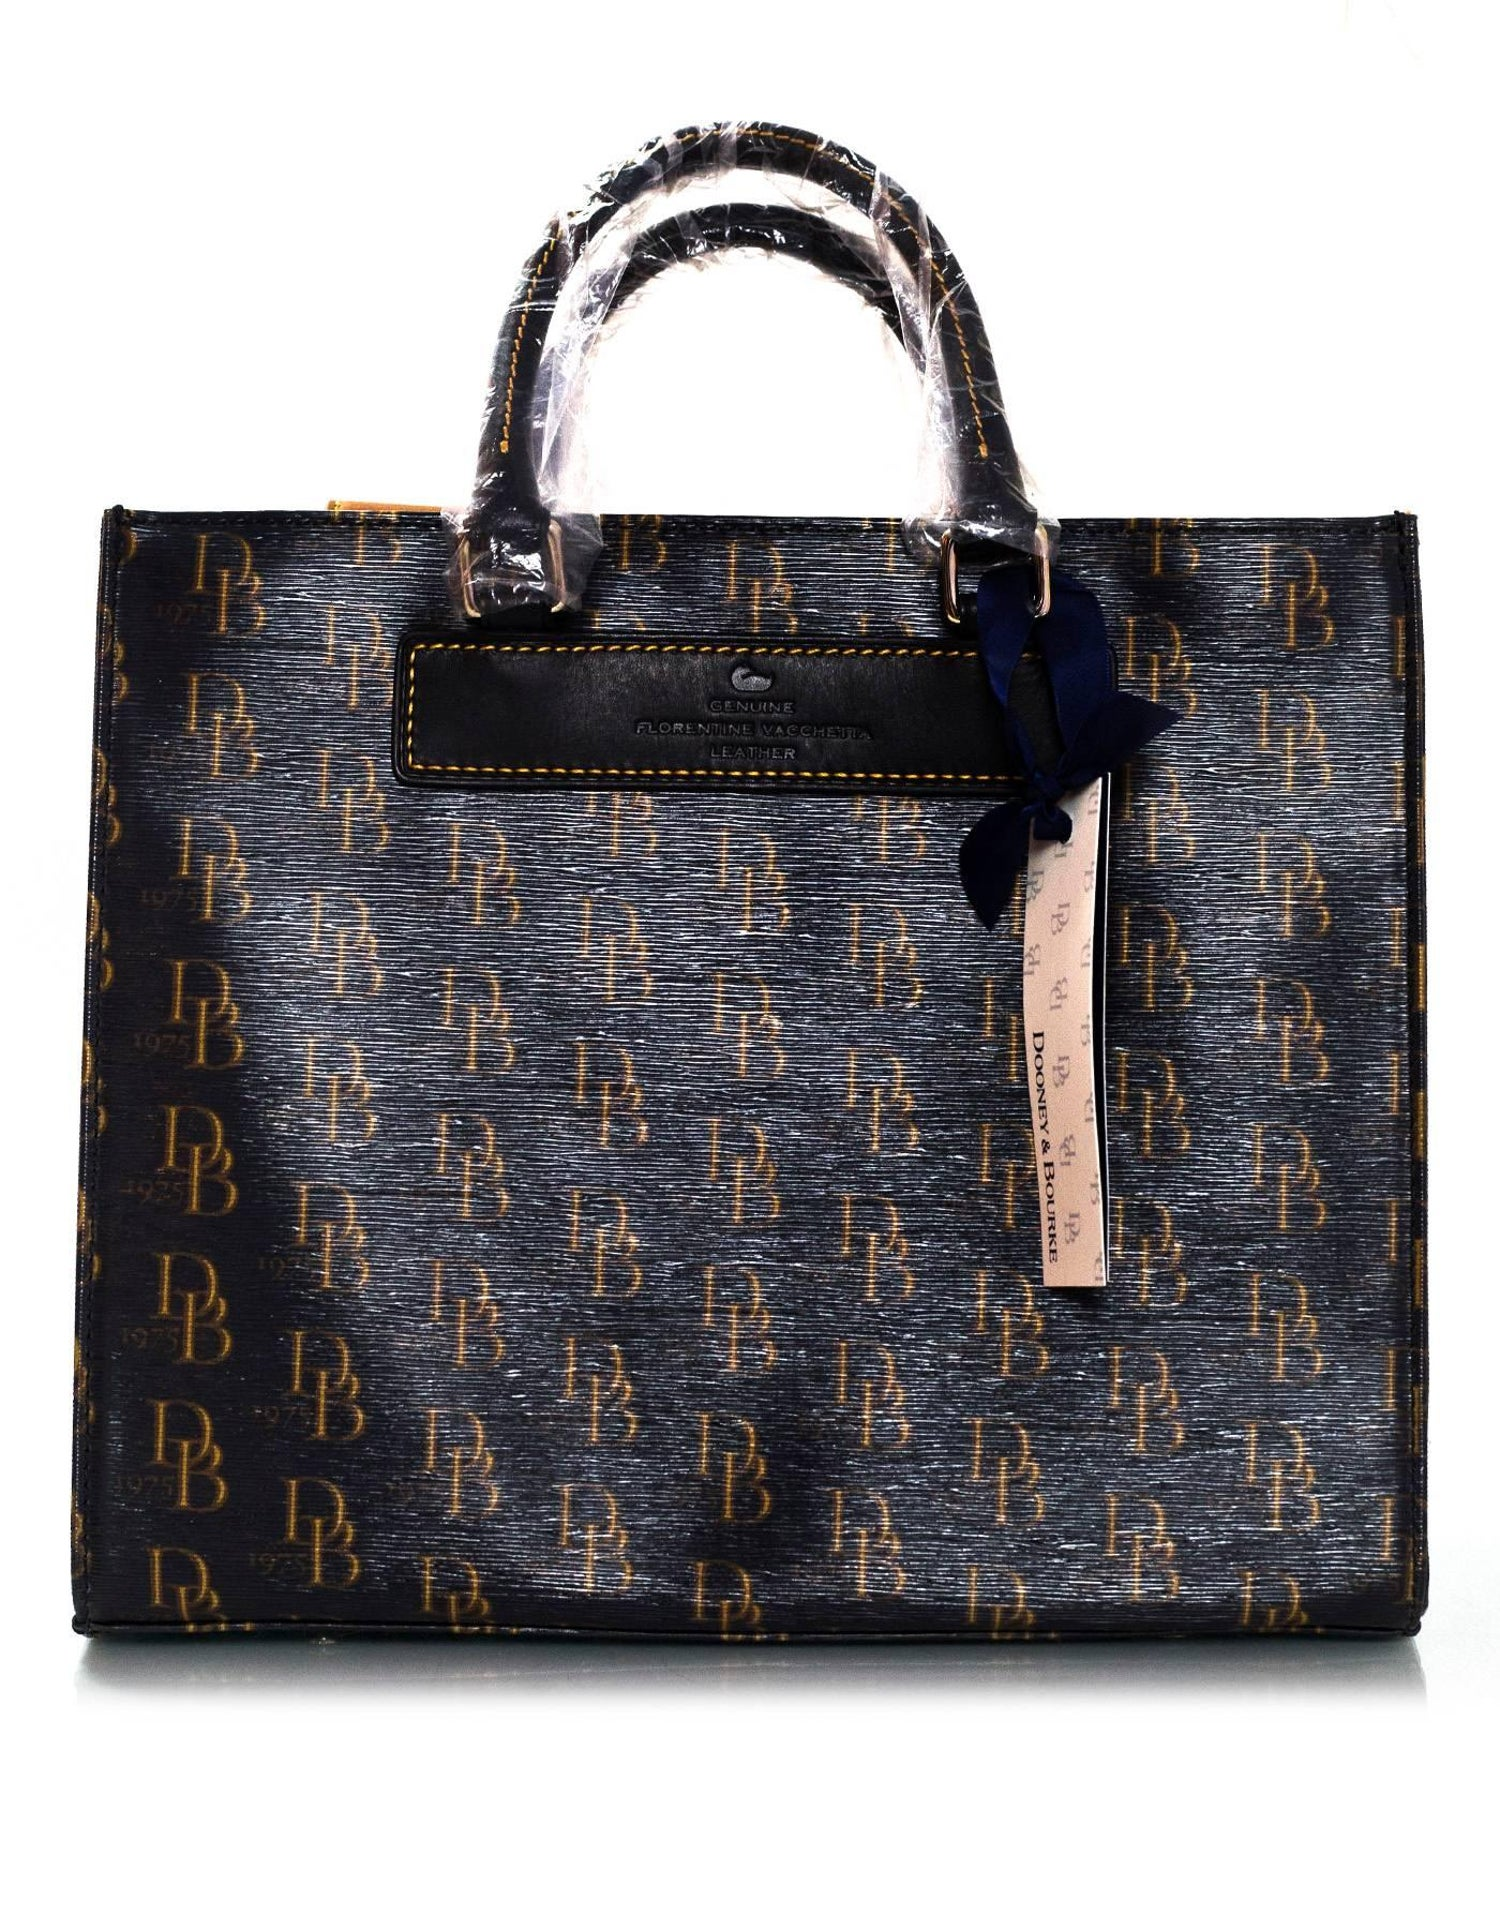 e56cb7c90a82 Dooney and Bourke Black Monogram Medium Janine Satchel NWT For Sale at  1stdibs